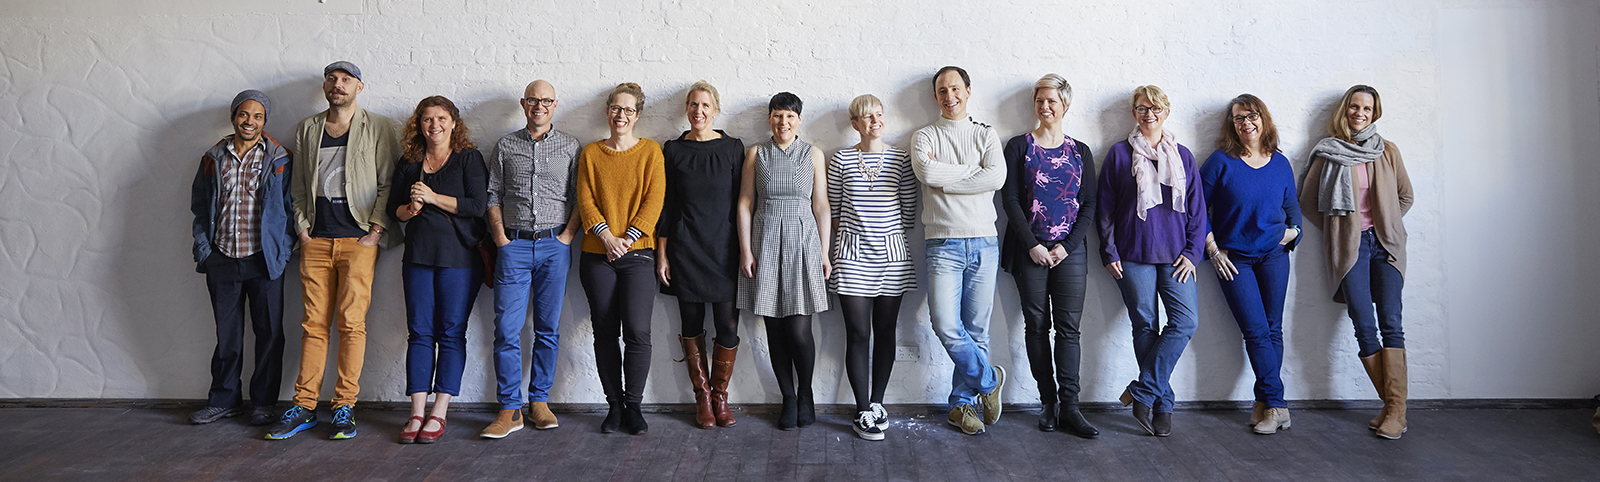 All staff leaning against a wall